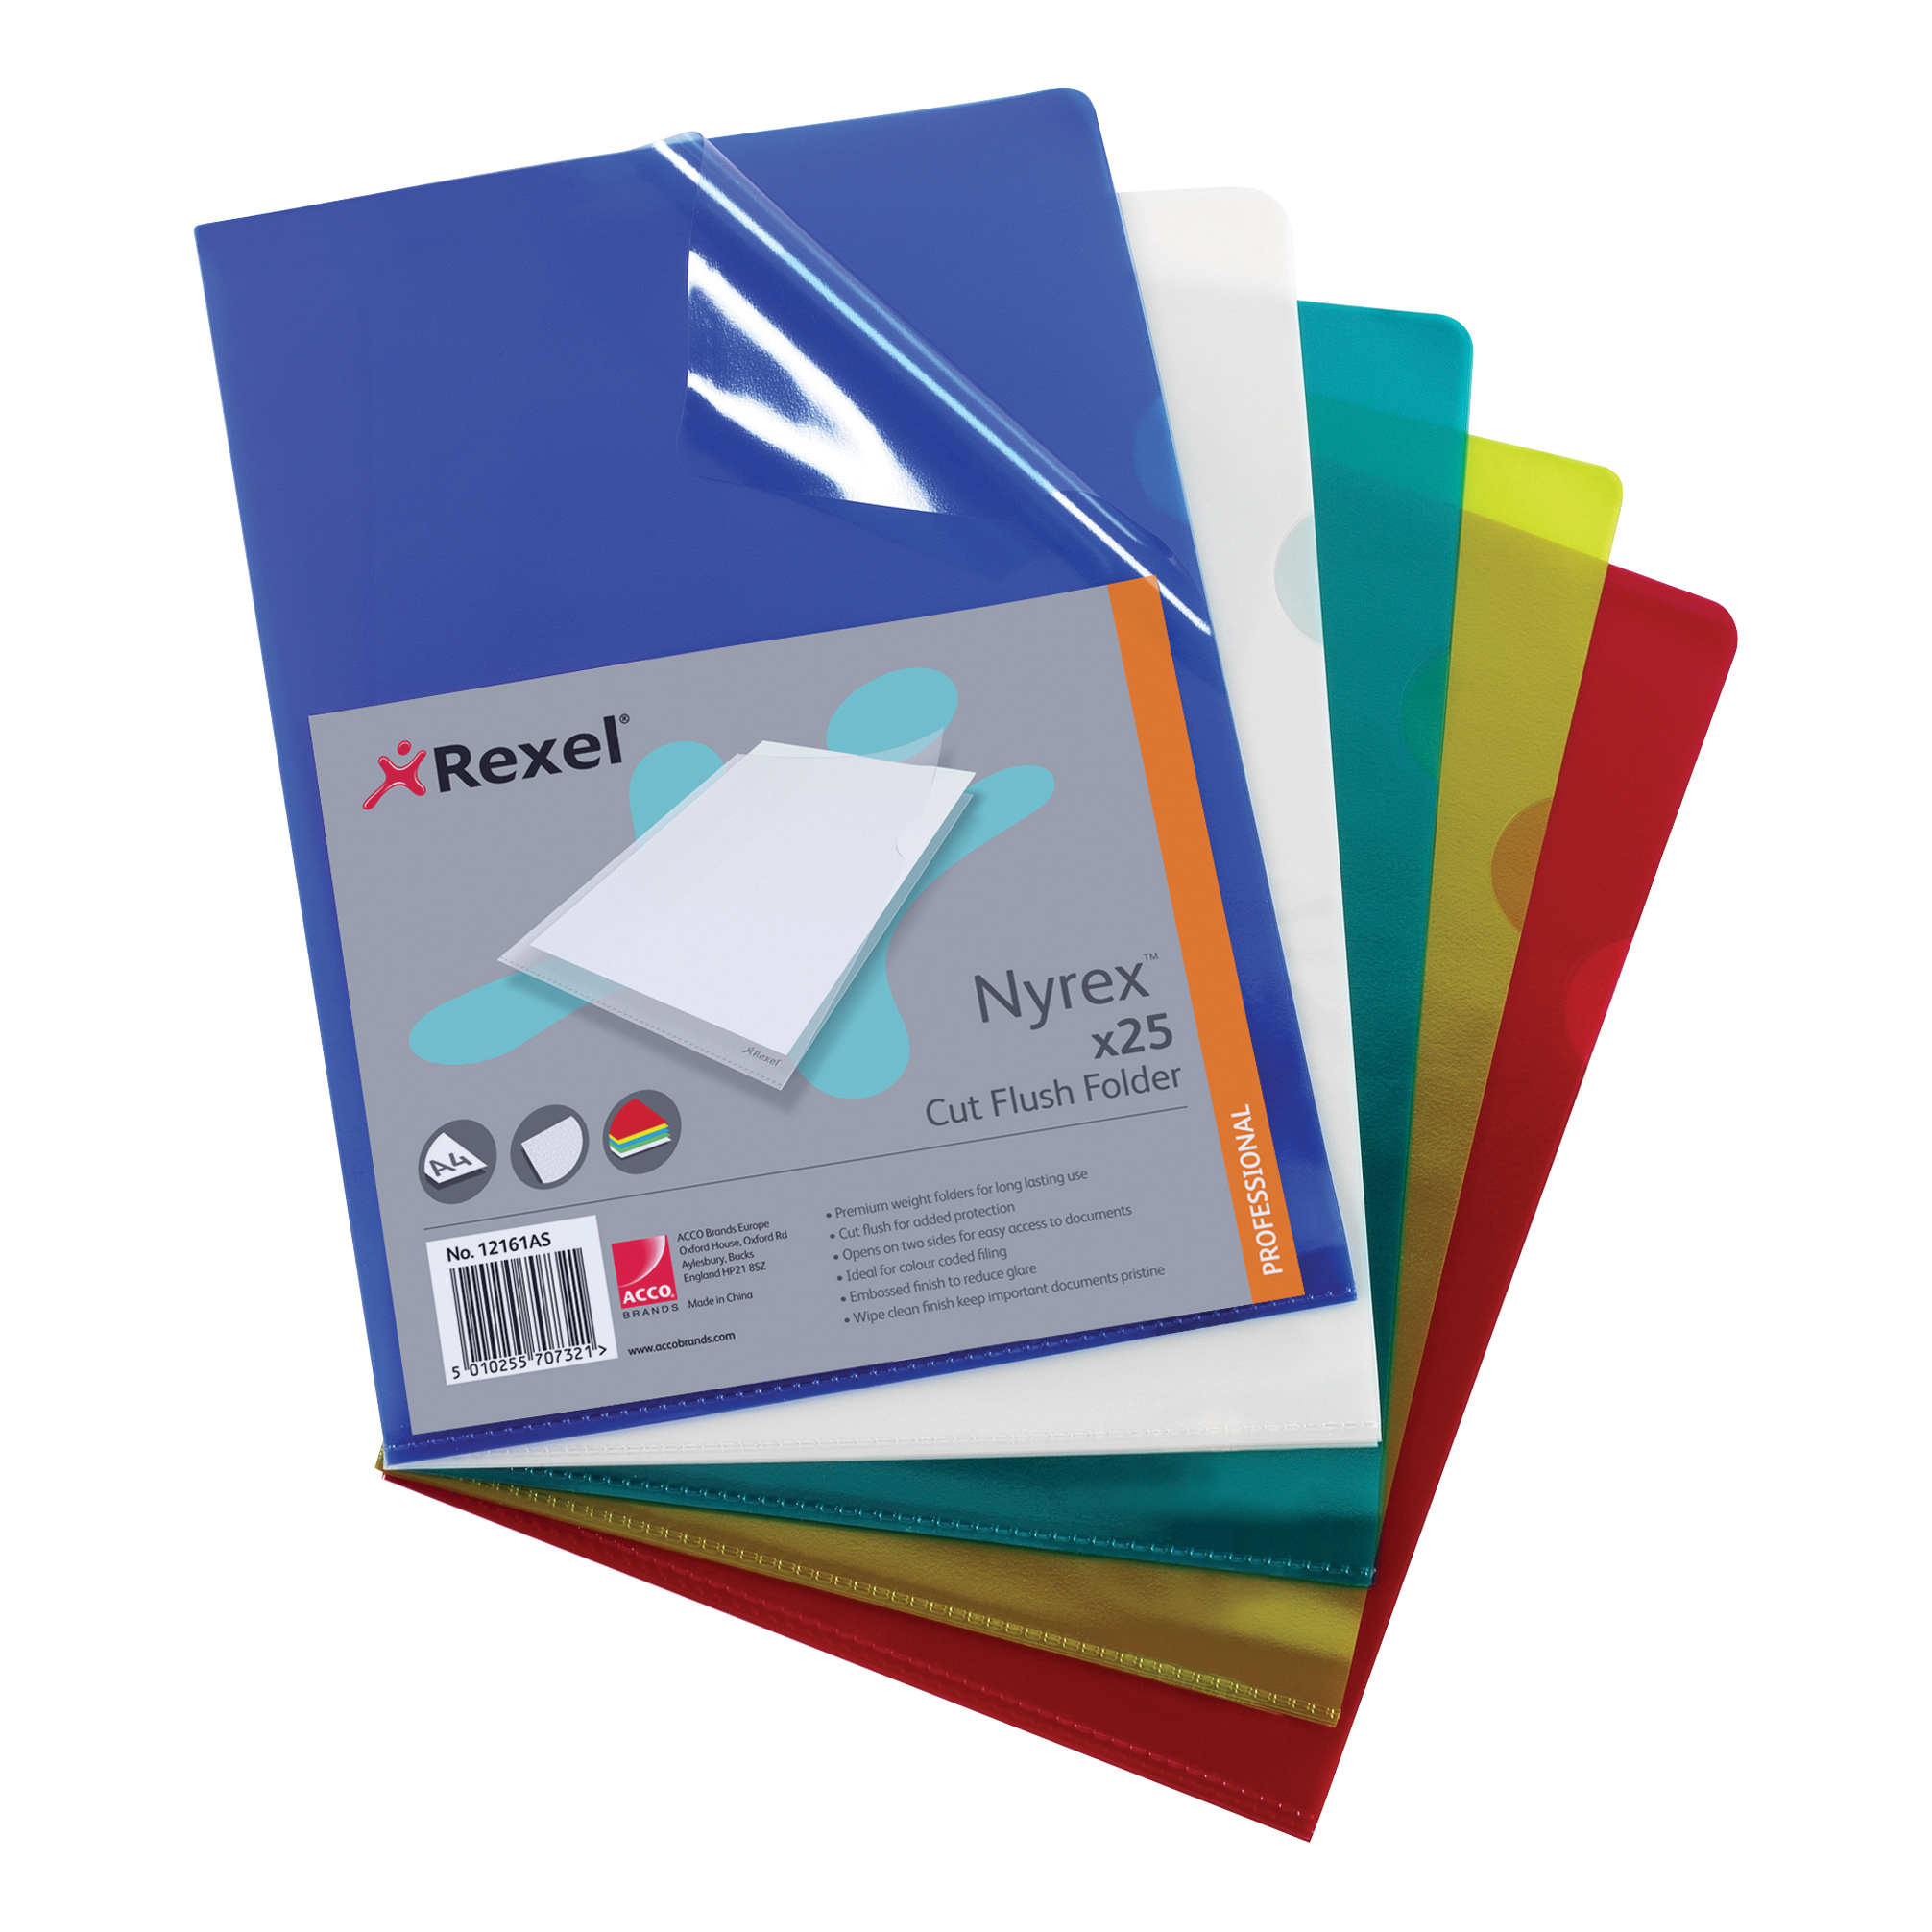 Rexel Nyrex Folder Cut Flush A4 Red Ref 12161RD Pack 25